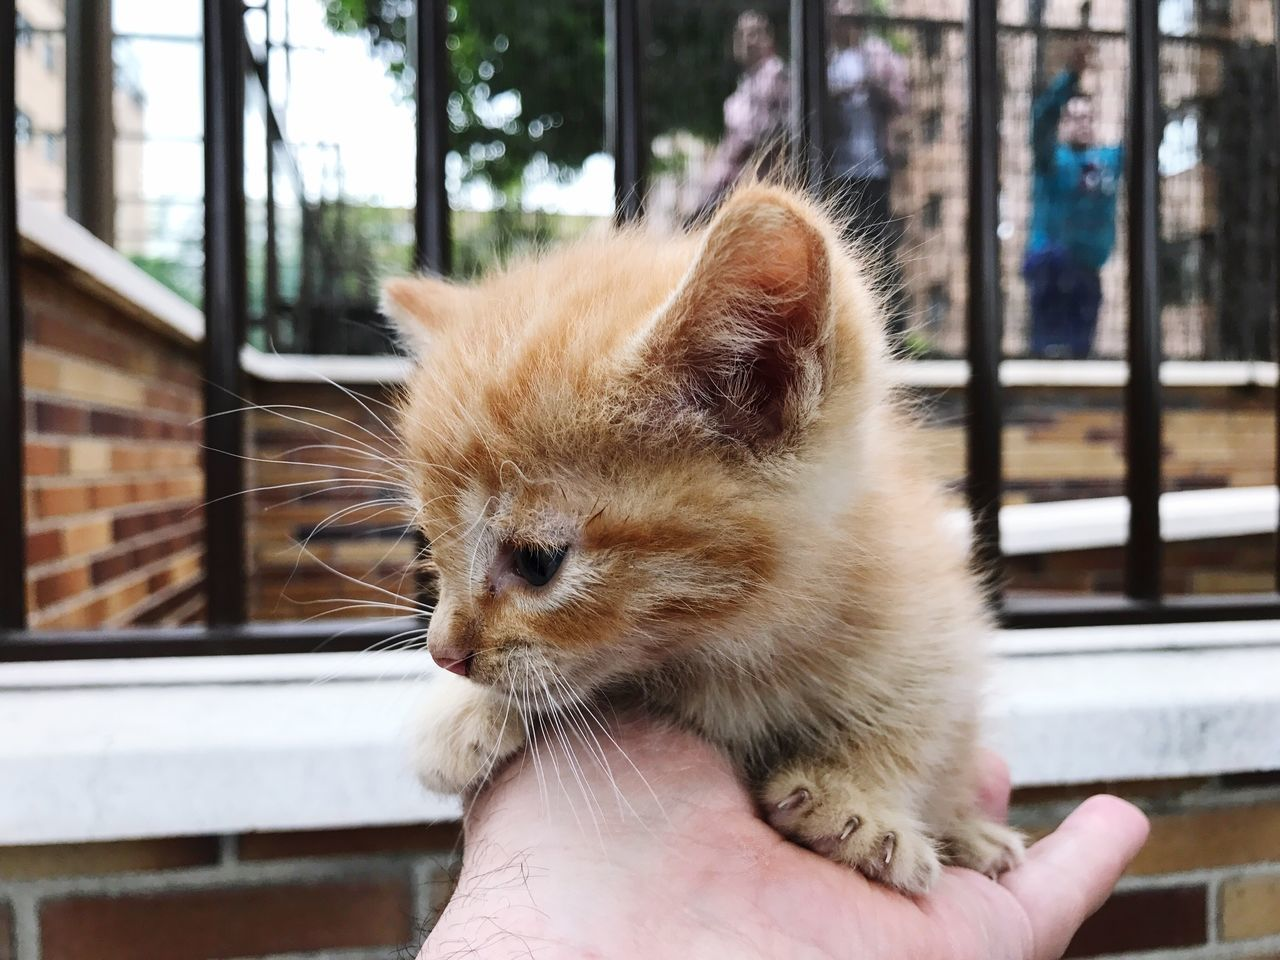 EyeEm Selects Pets Animal Themes One Animal Domestic Cat Domestic Animals One Person Real People Mammal Human Hand Focus On Foreground Holding Day Window Feline Whisker Human Body Part Close-up Outdoors Building Exterior Ginger Cat